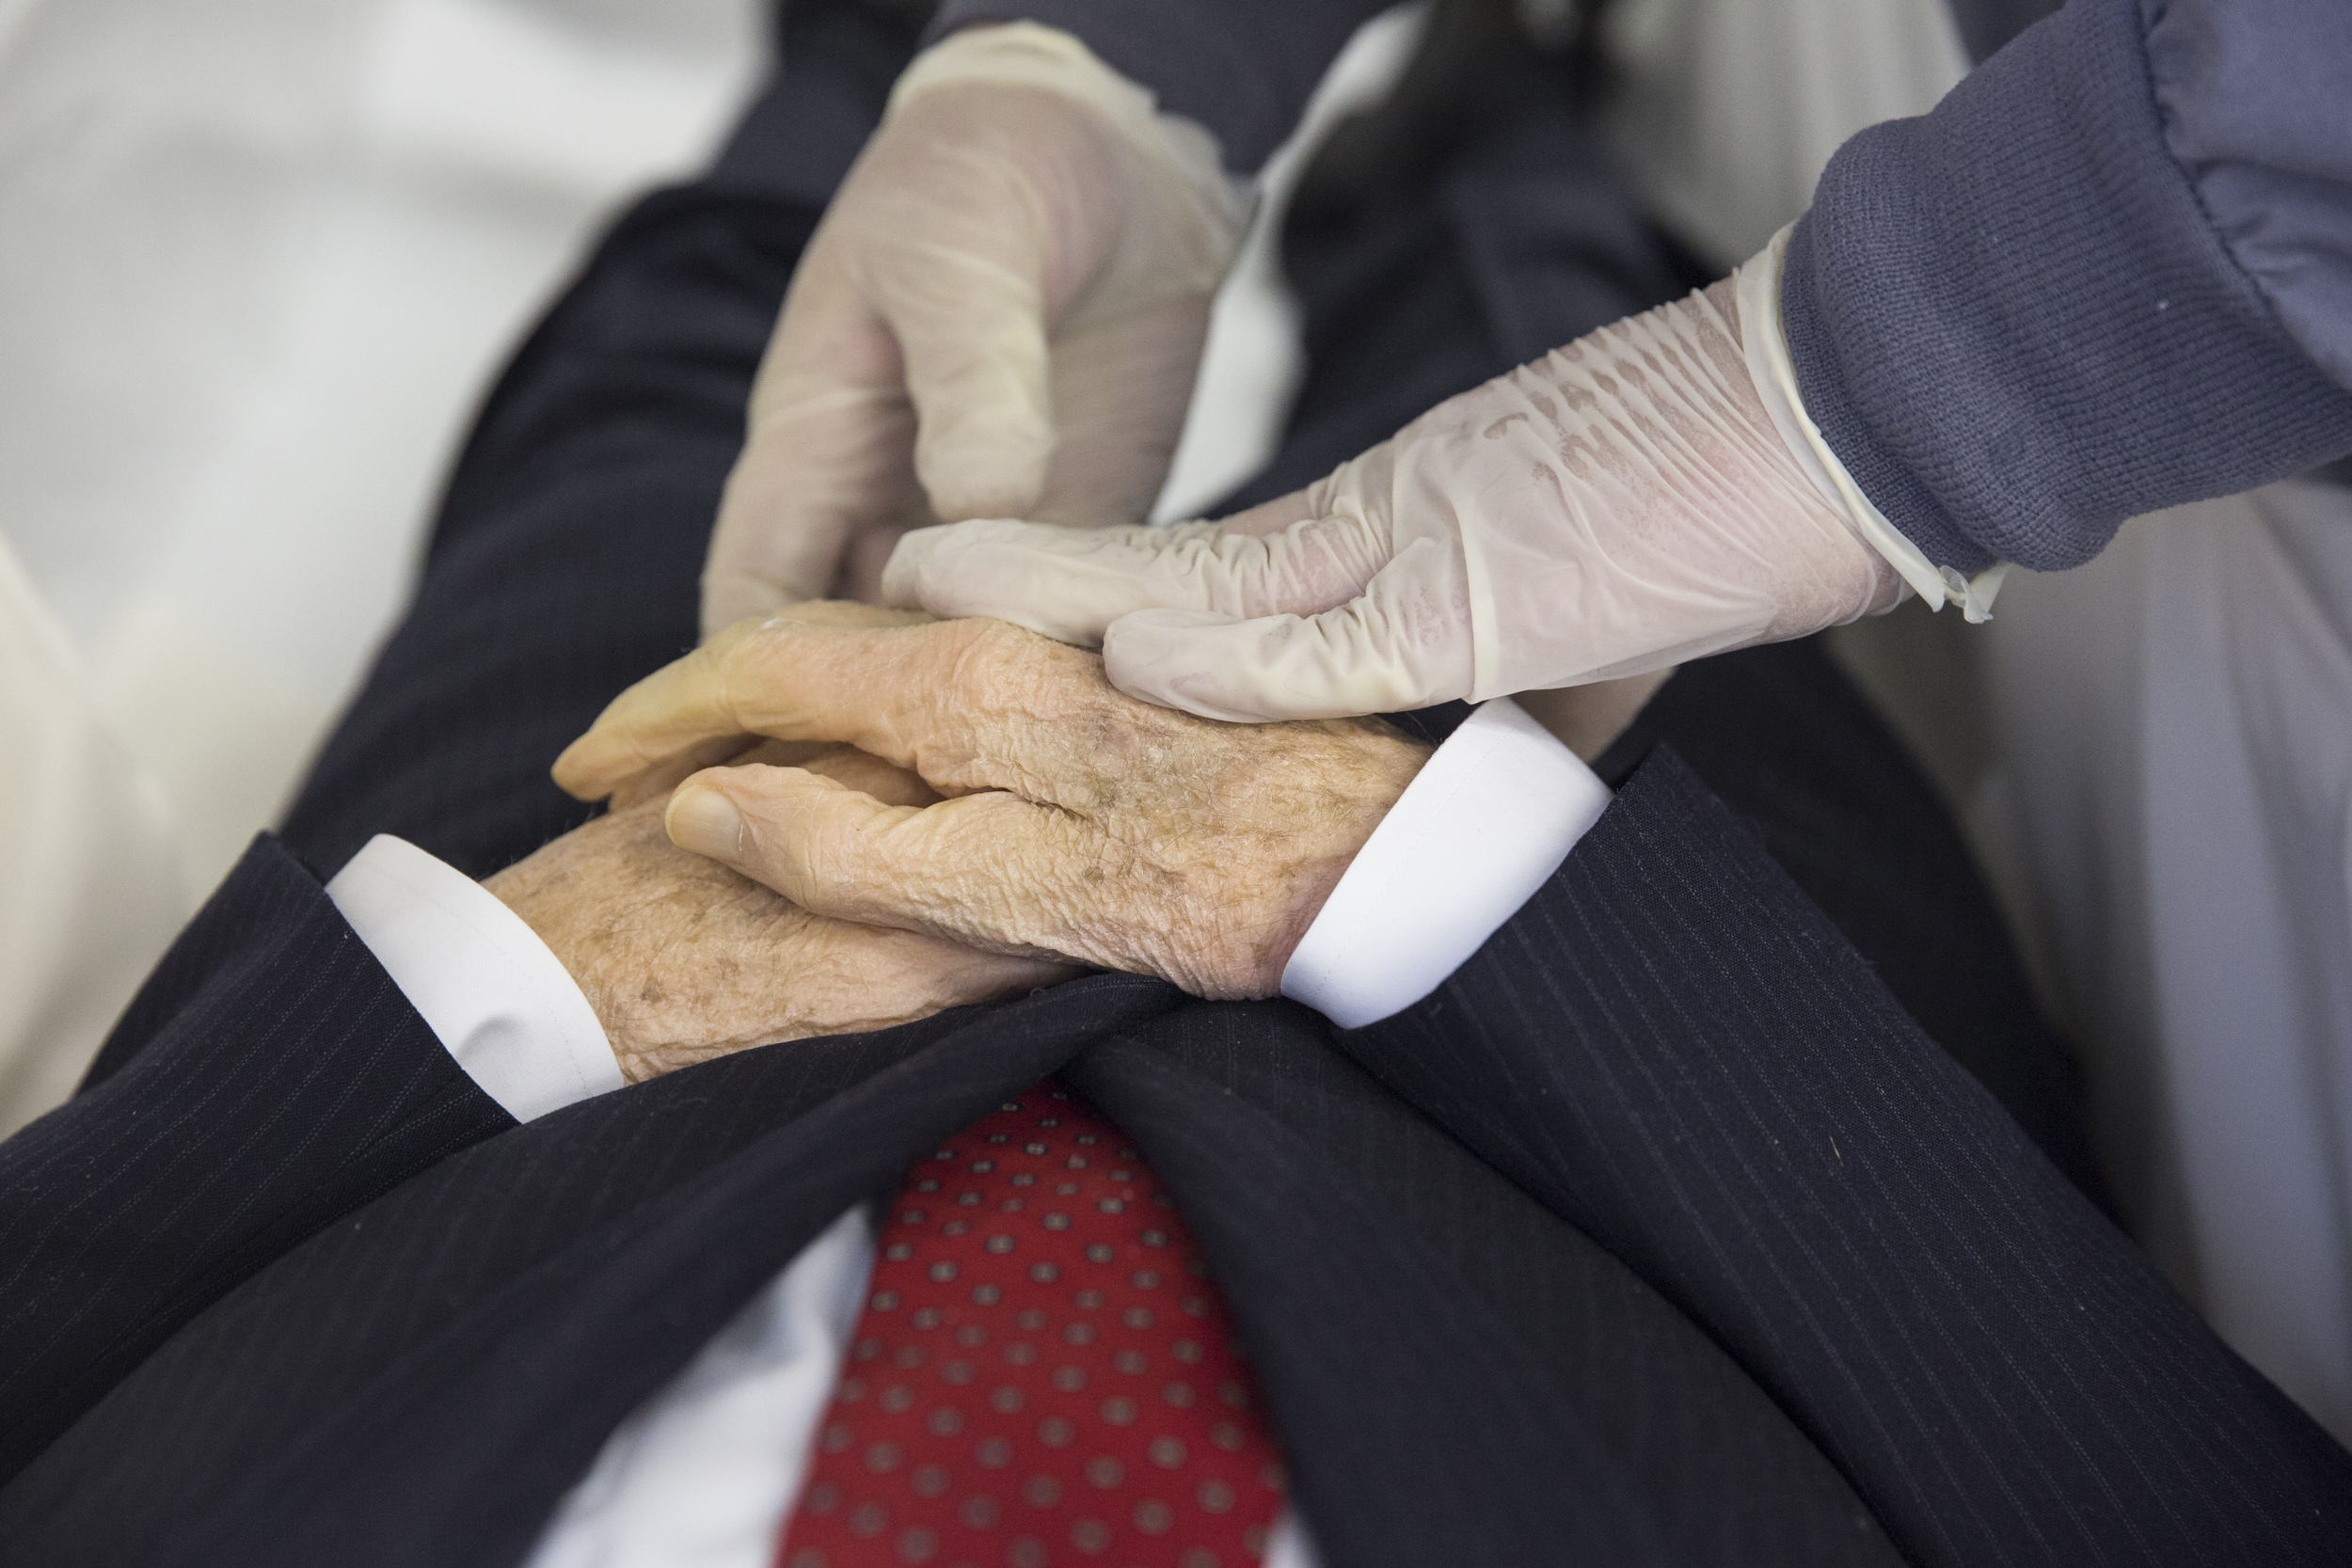 """A licensed funeral director (name redacted) places one hand of the deceased on top of the other during the final preparations for a funeral ceremony at a local funeral home (name redacted) in Rochester, NY on Feb. 18, 2015.""""If the hands are not placed in that position soon after death, it can be very difficult to place them there later."""""""